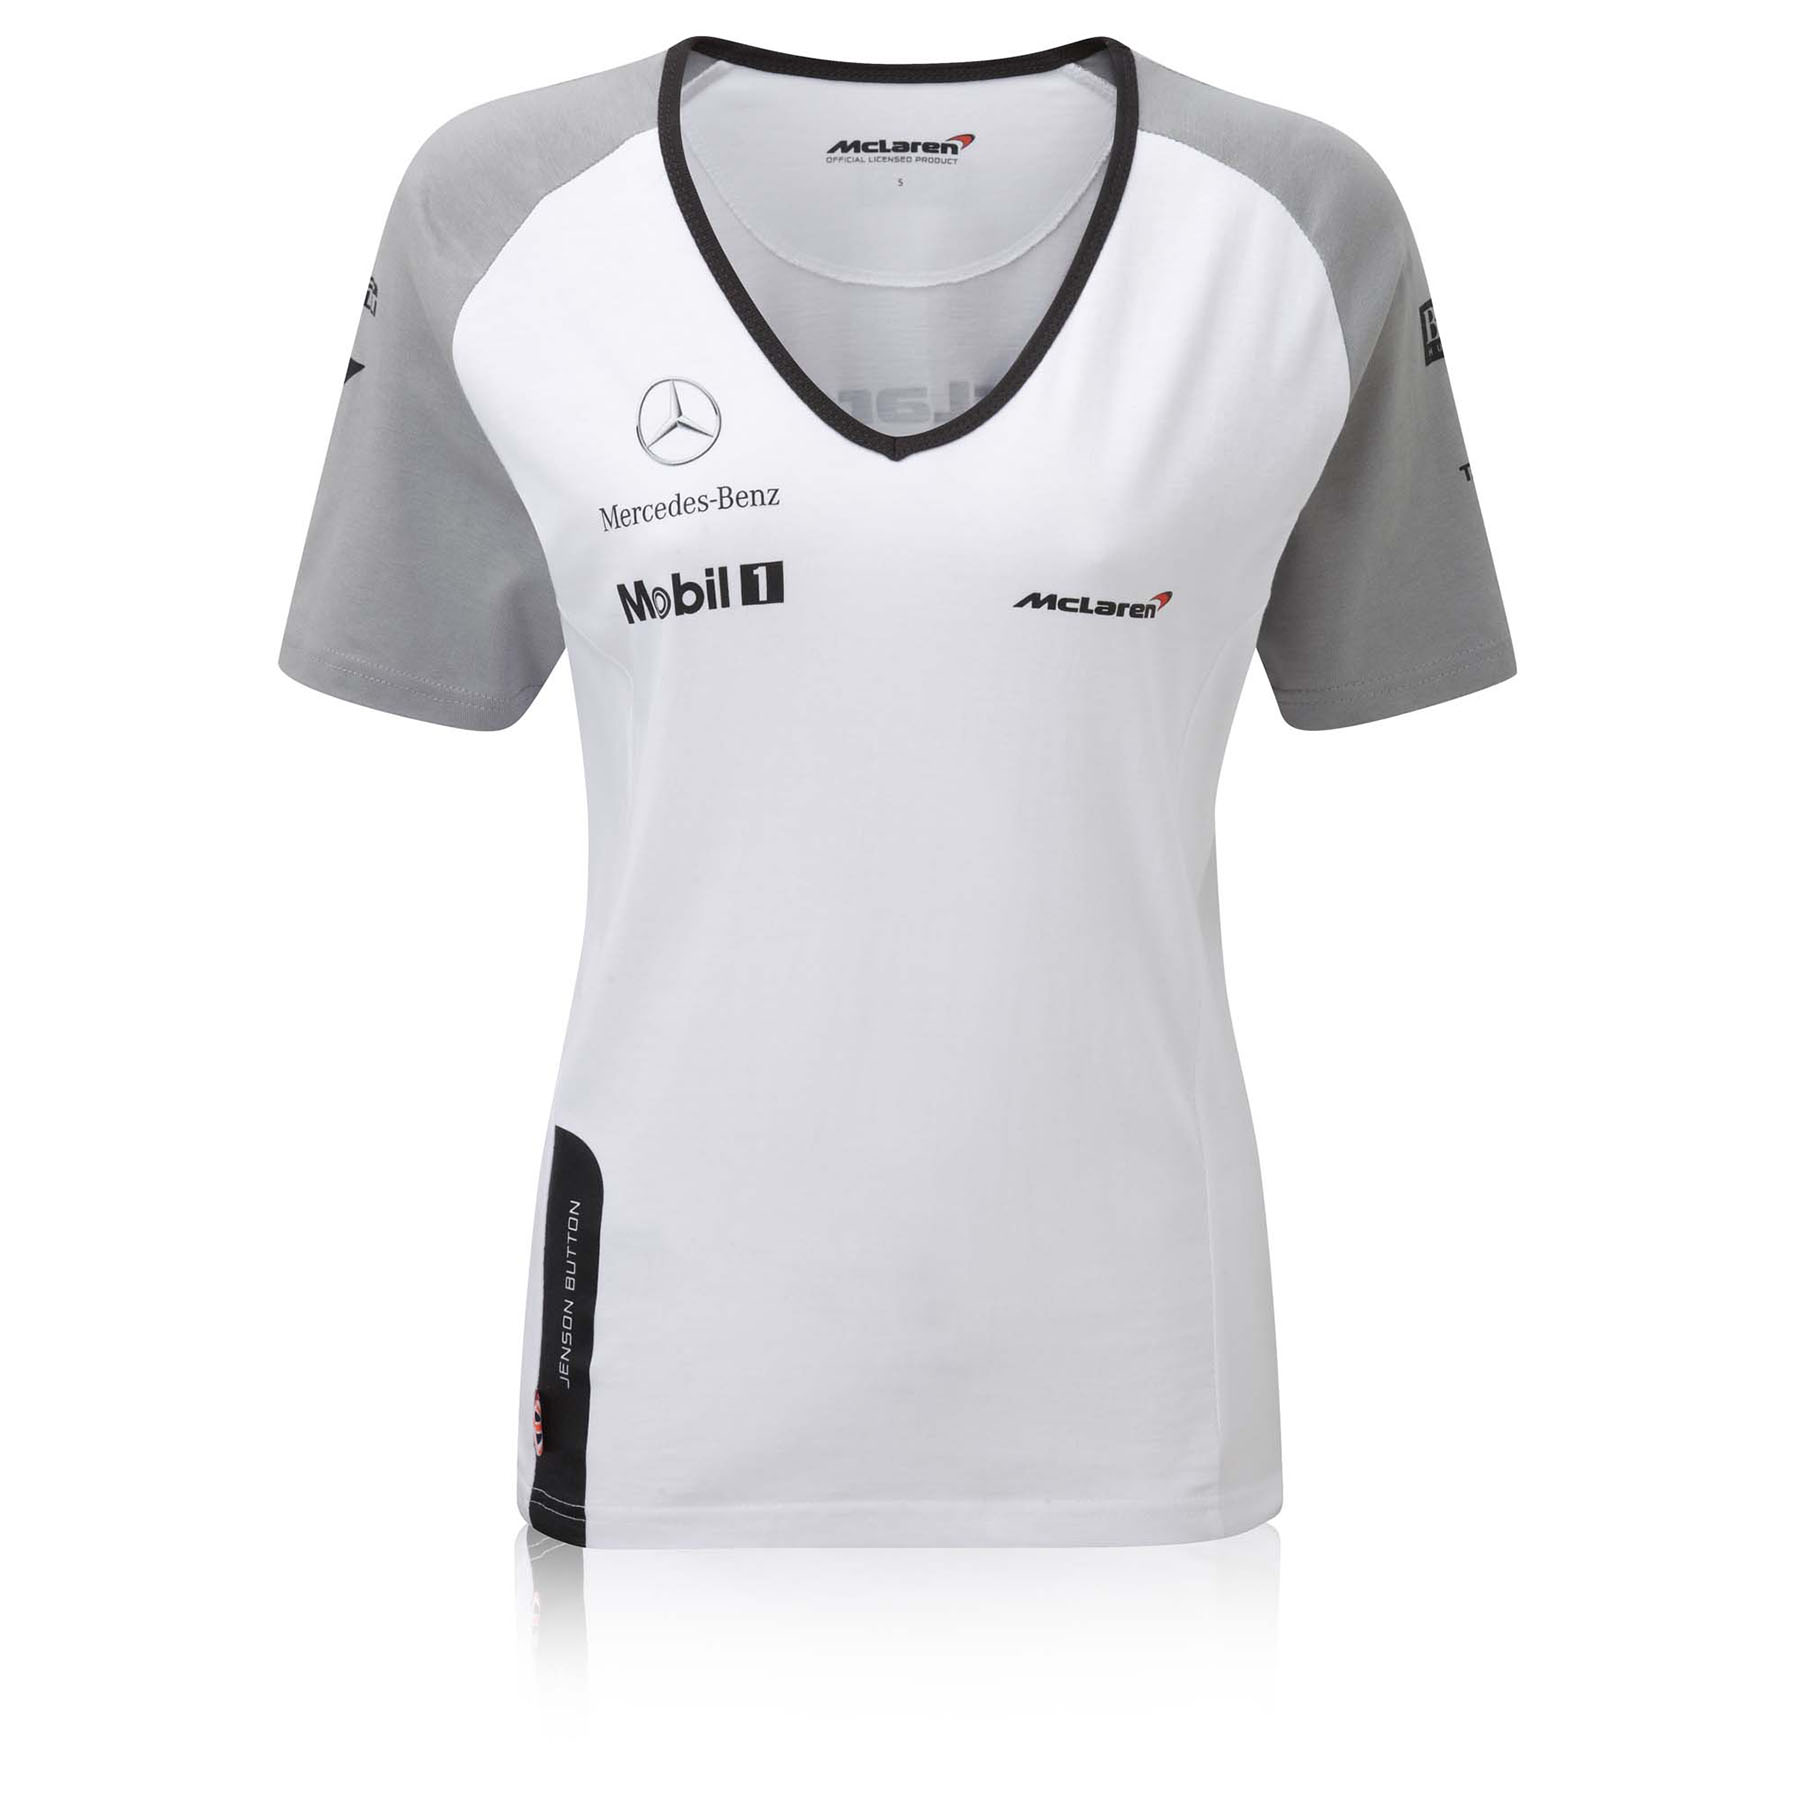 McLaren Mercedes Jenson Button Cotton T-Shirt - Womens